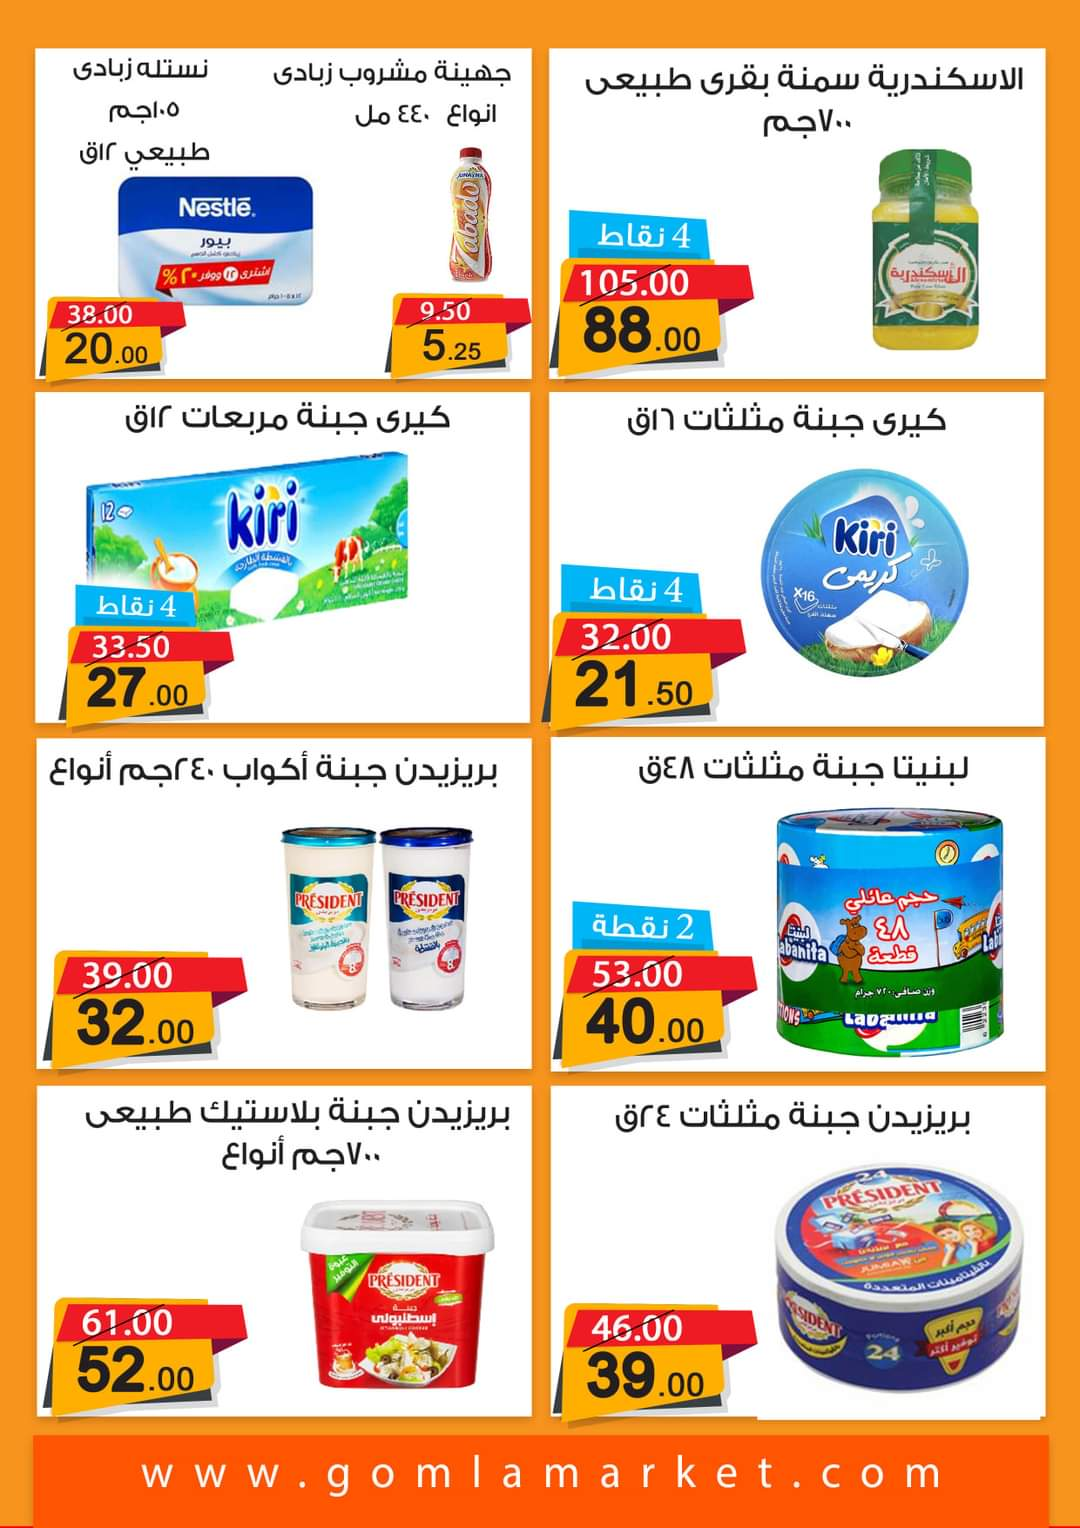 Various products